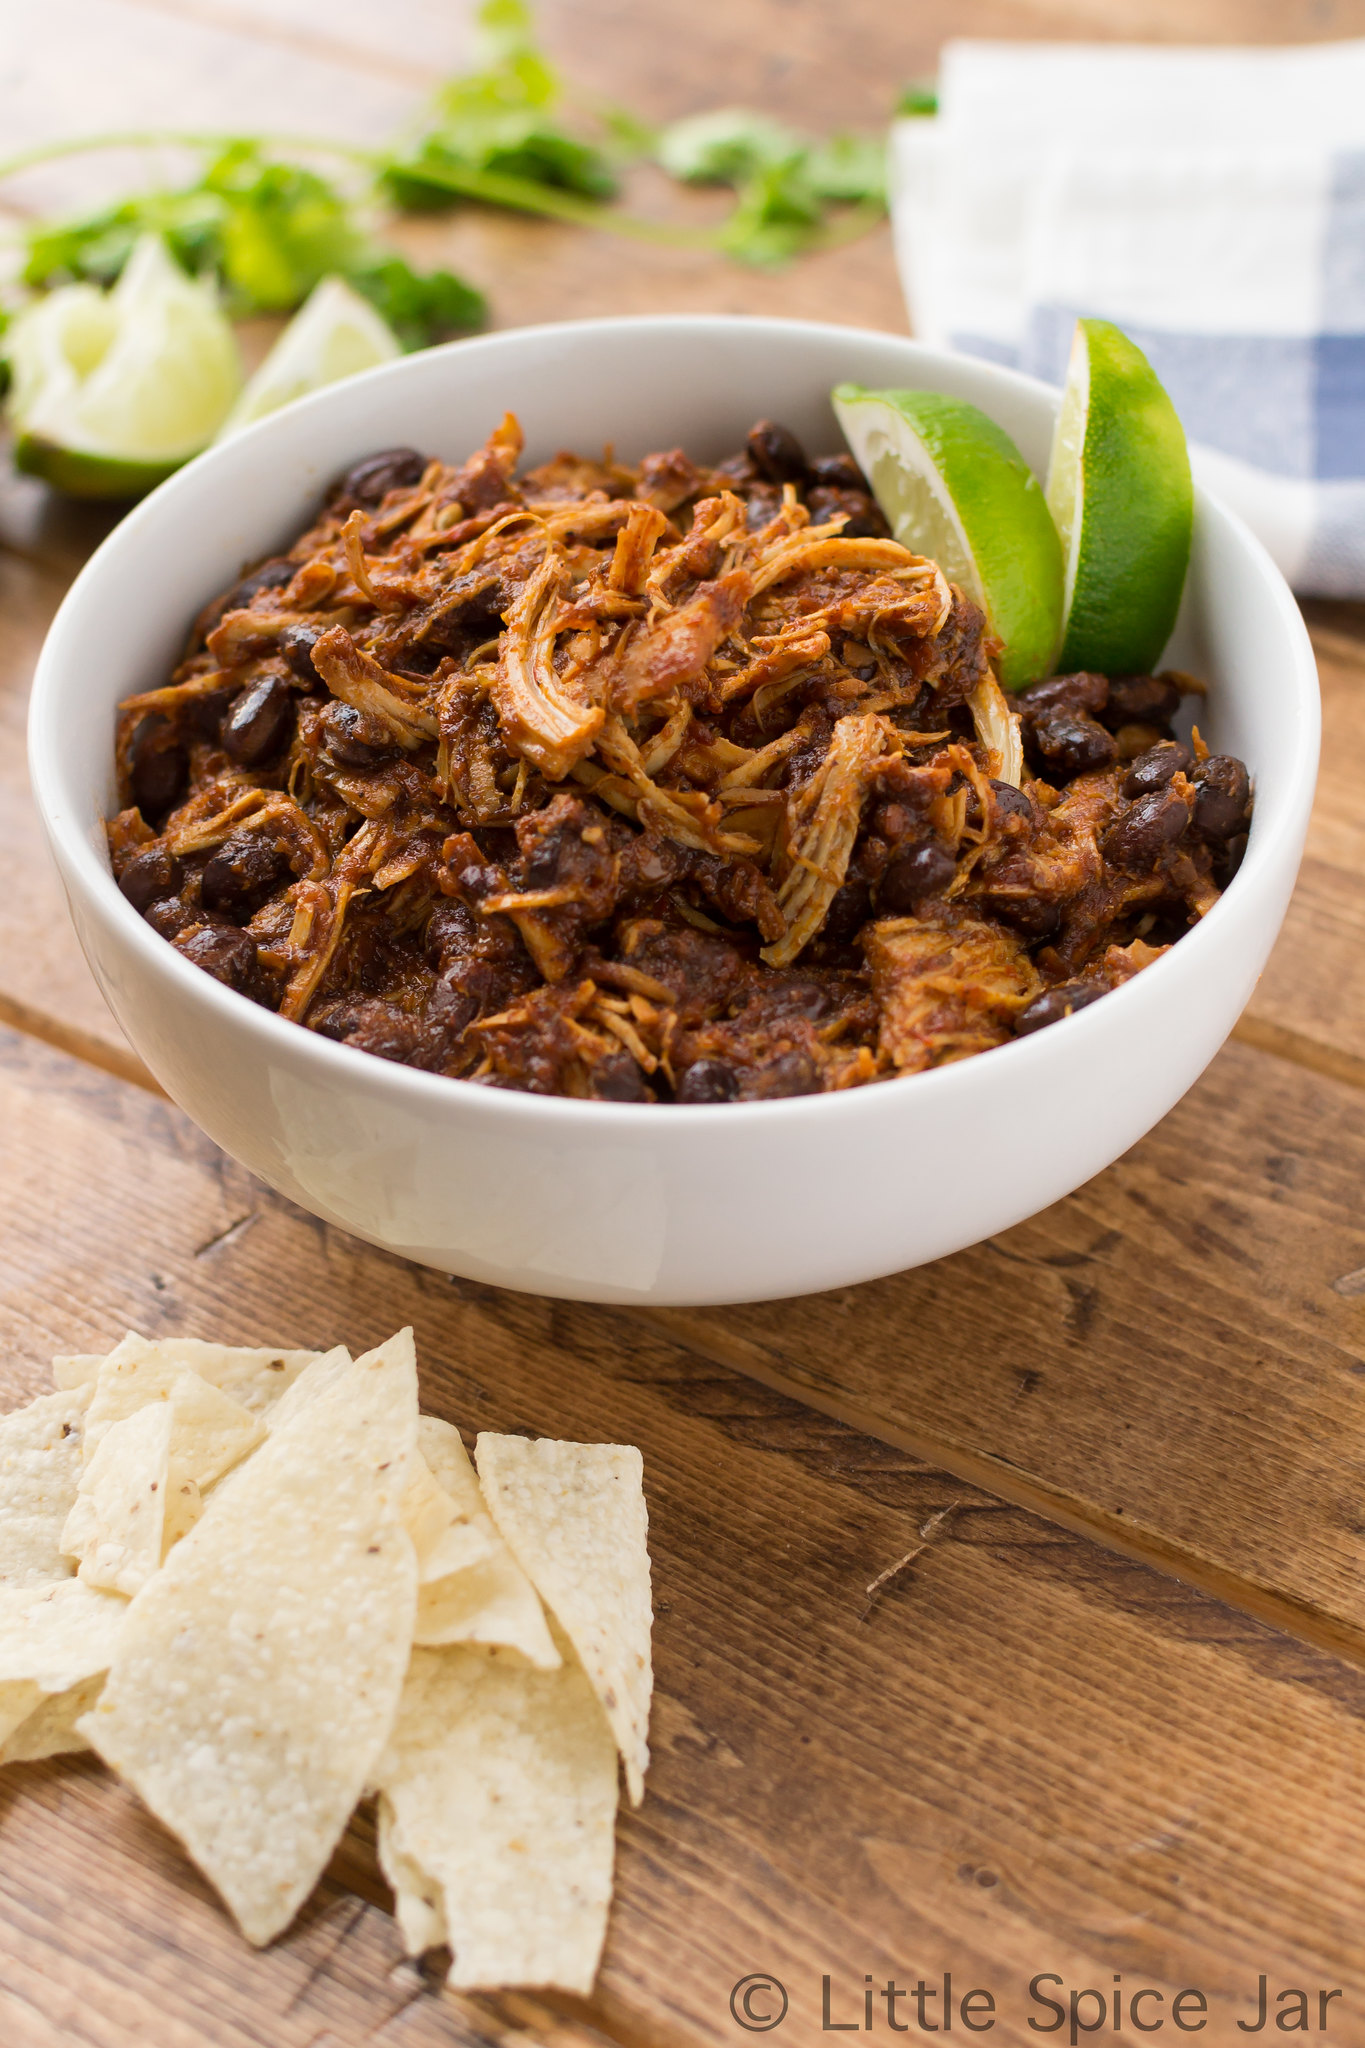 Easy Slow Cooker Salsa Chicken with Black Beans Shredded Chicken + Beans